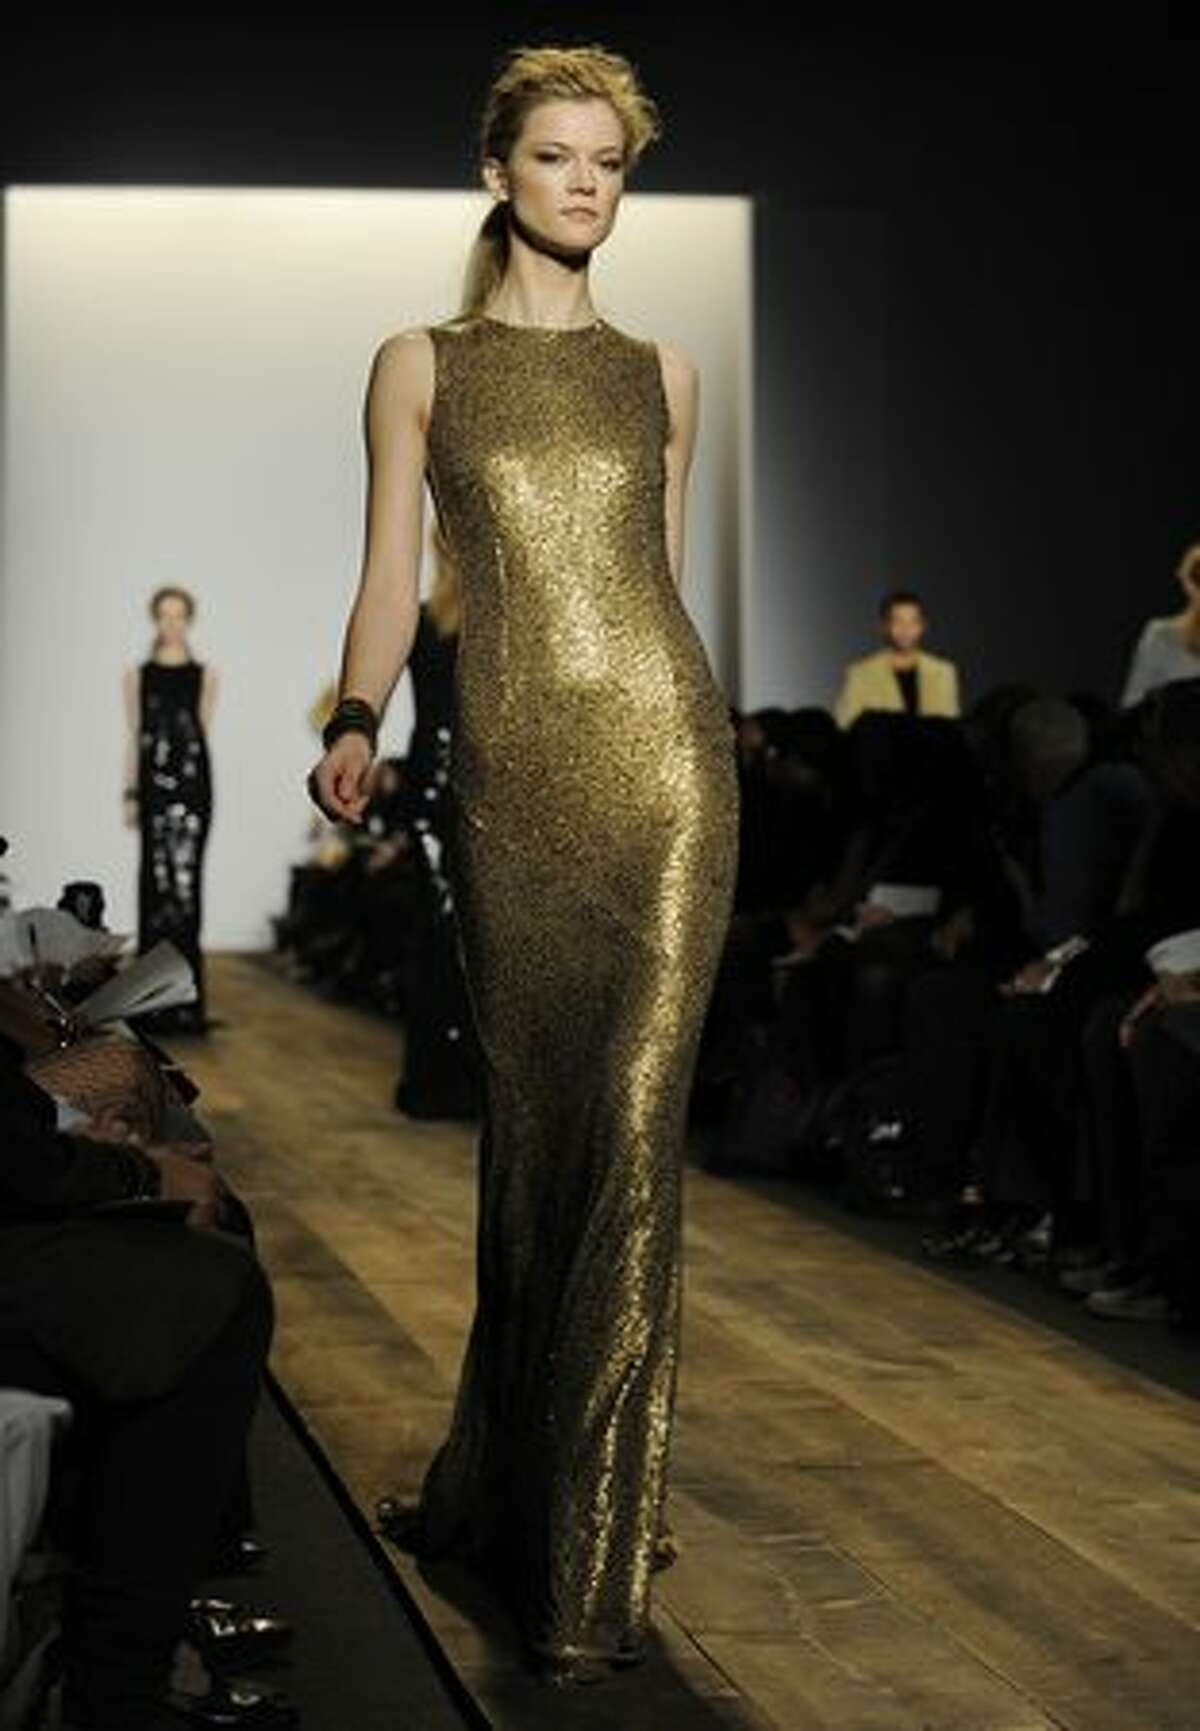 A model displays a creation by Michael Kors.